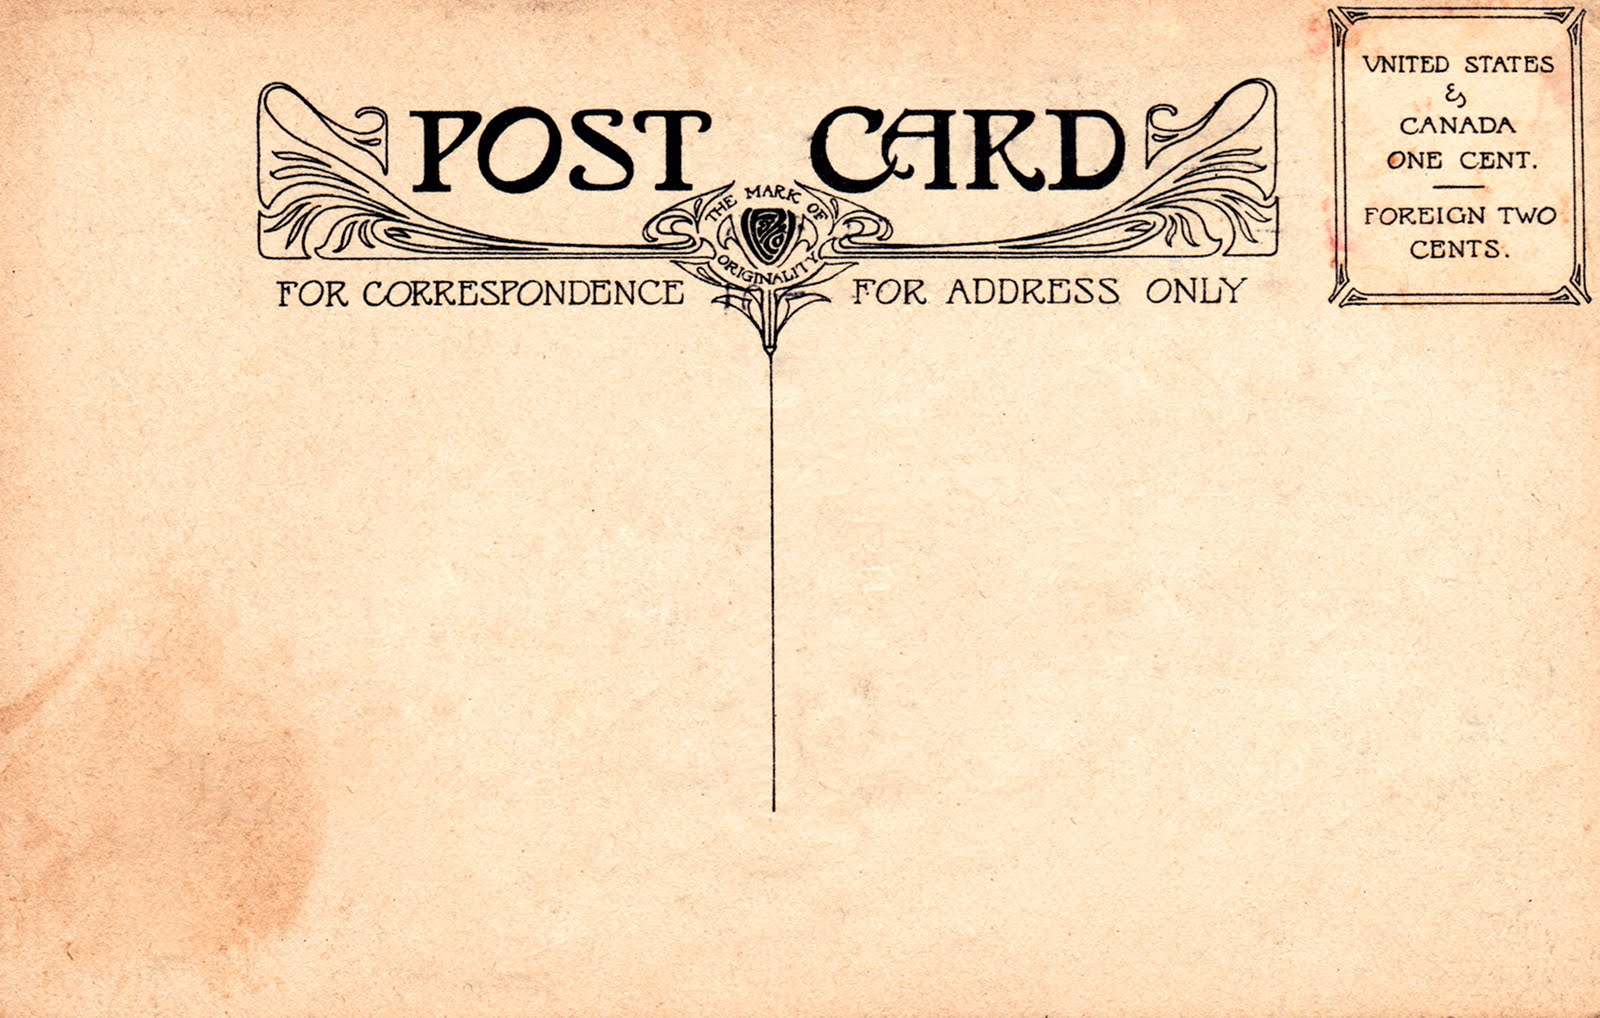 Aged Shabby Postcard Back Red Typography And Design  Free Vintage